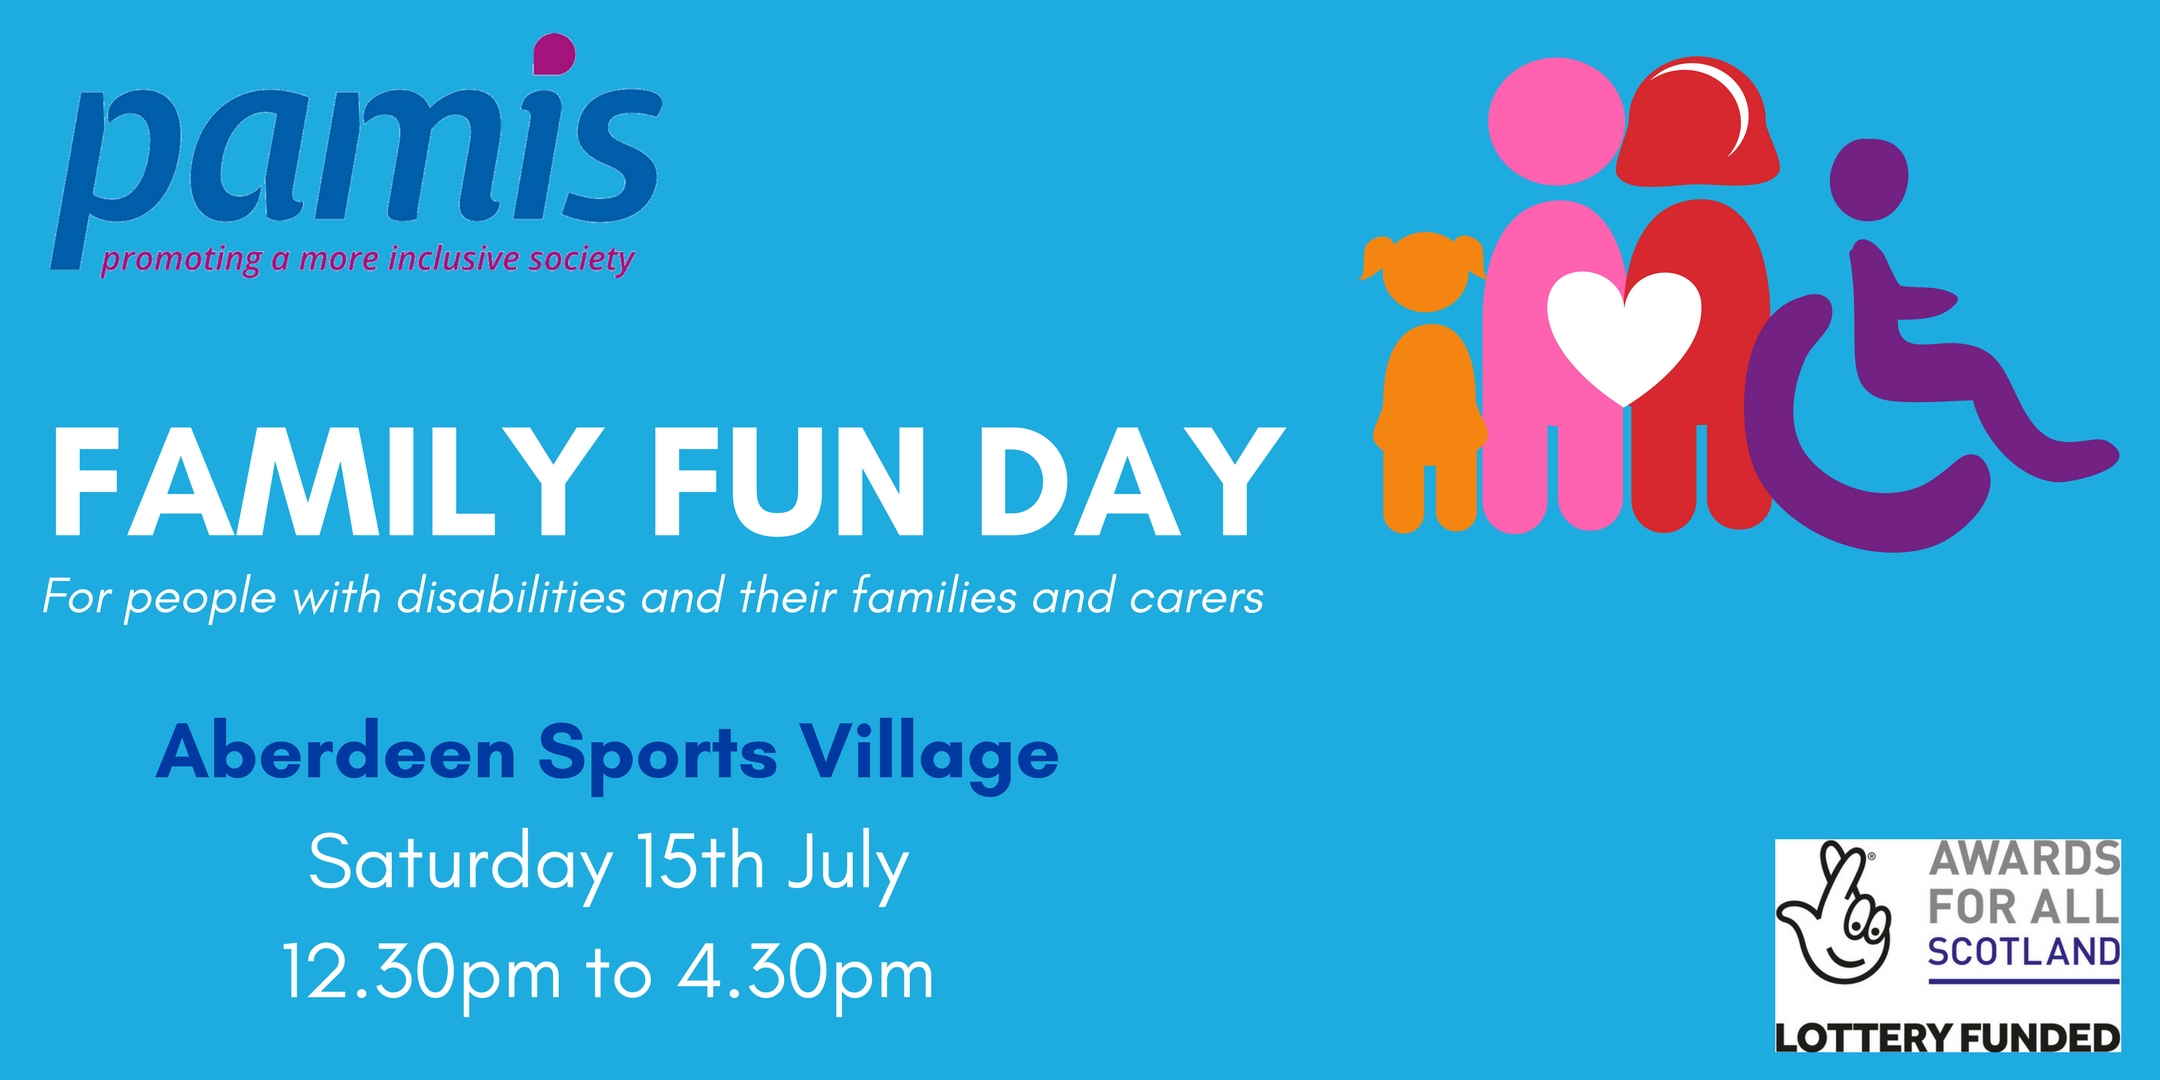 PAMIS Family Fun Day – Grampian